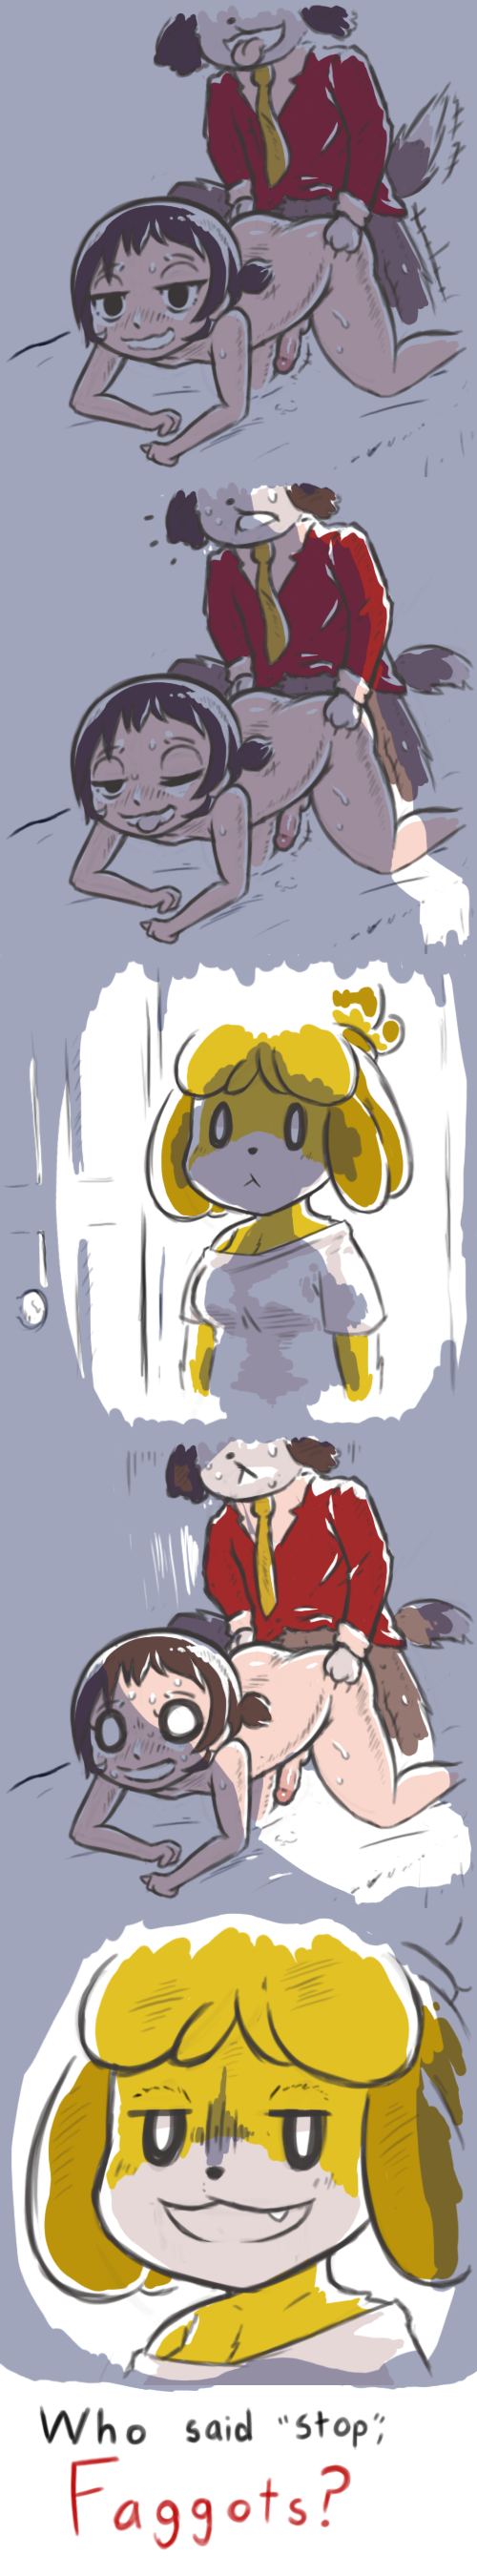 Animal Crossing Villager And Isabelle Day Off Porn Comic rule 34 - 1girls 2boys all fours anal animal crossing anthro